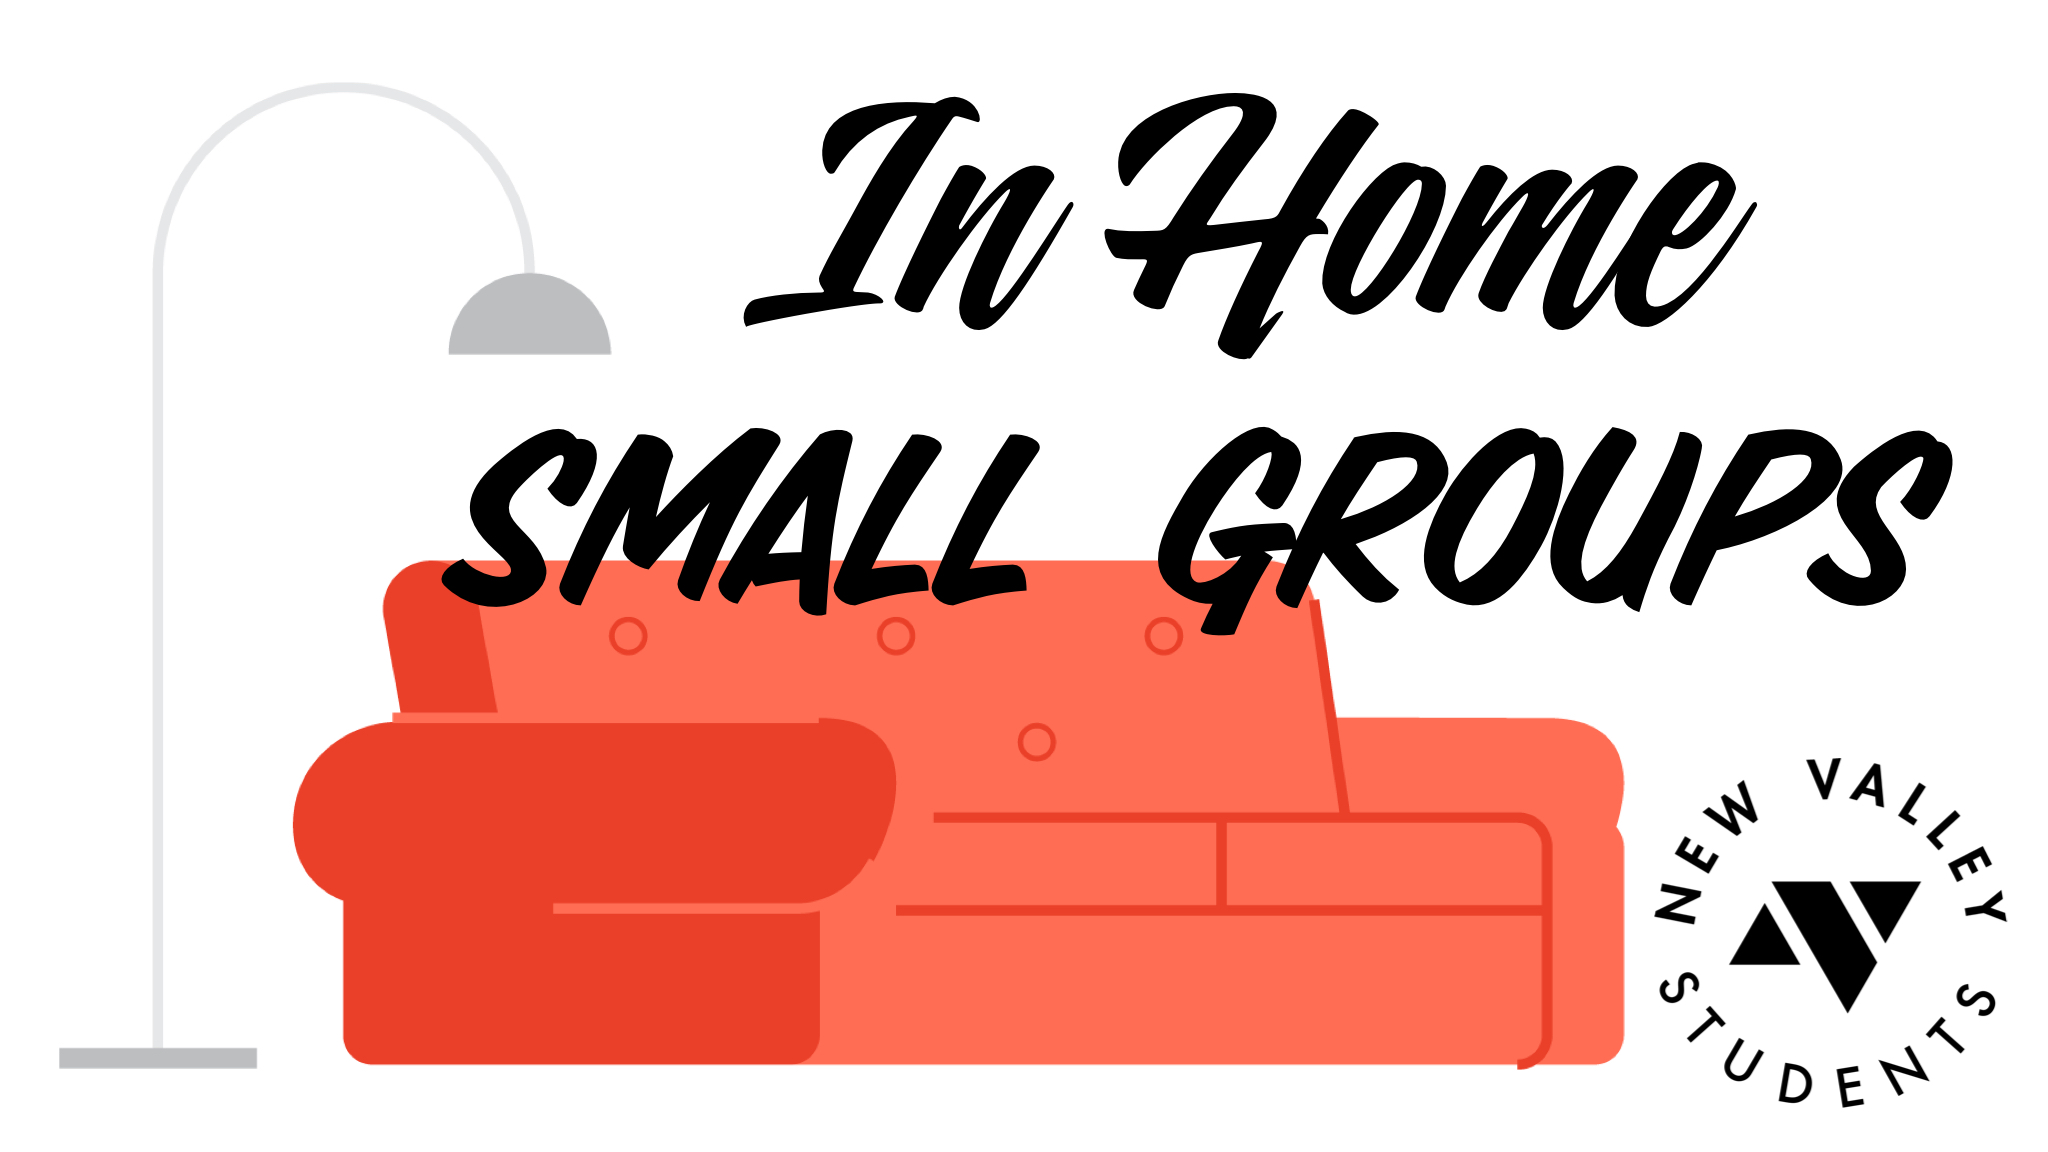 In-home groups.JPG image